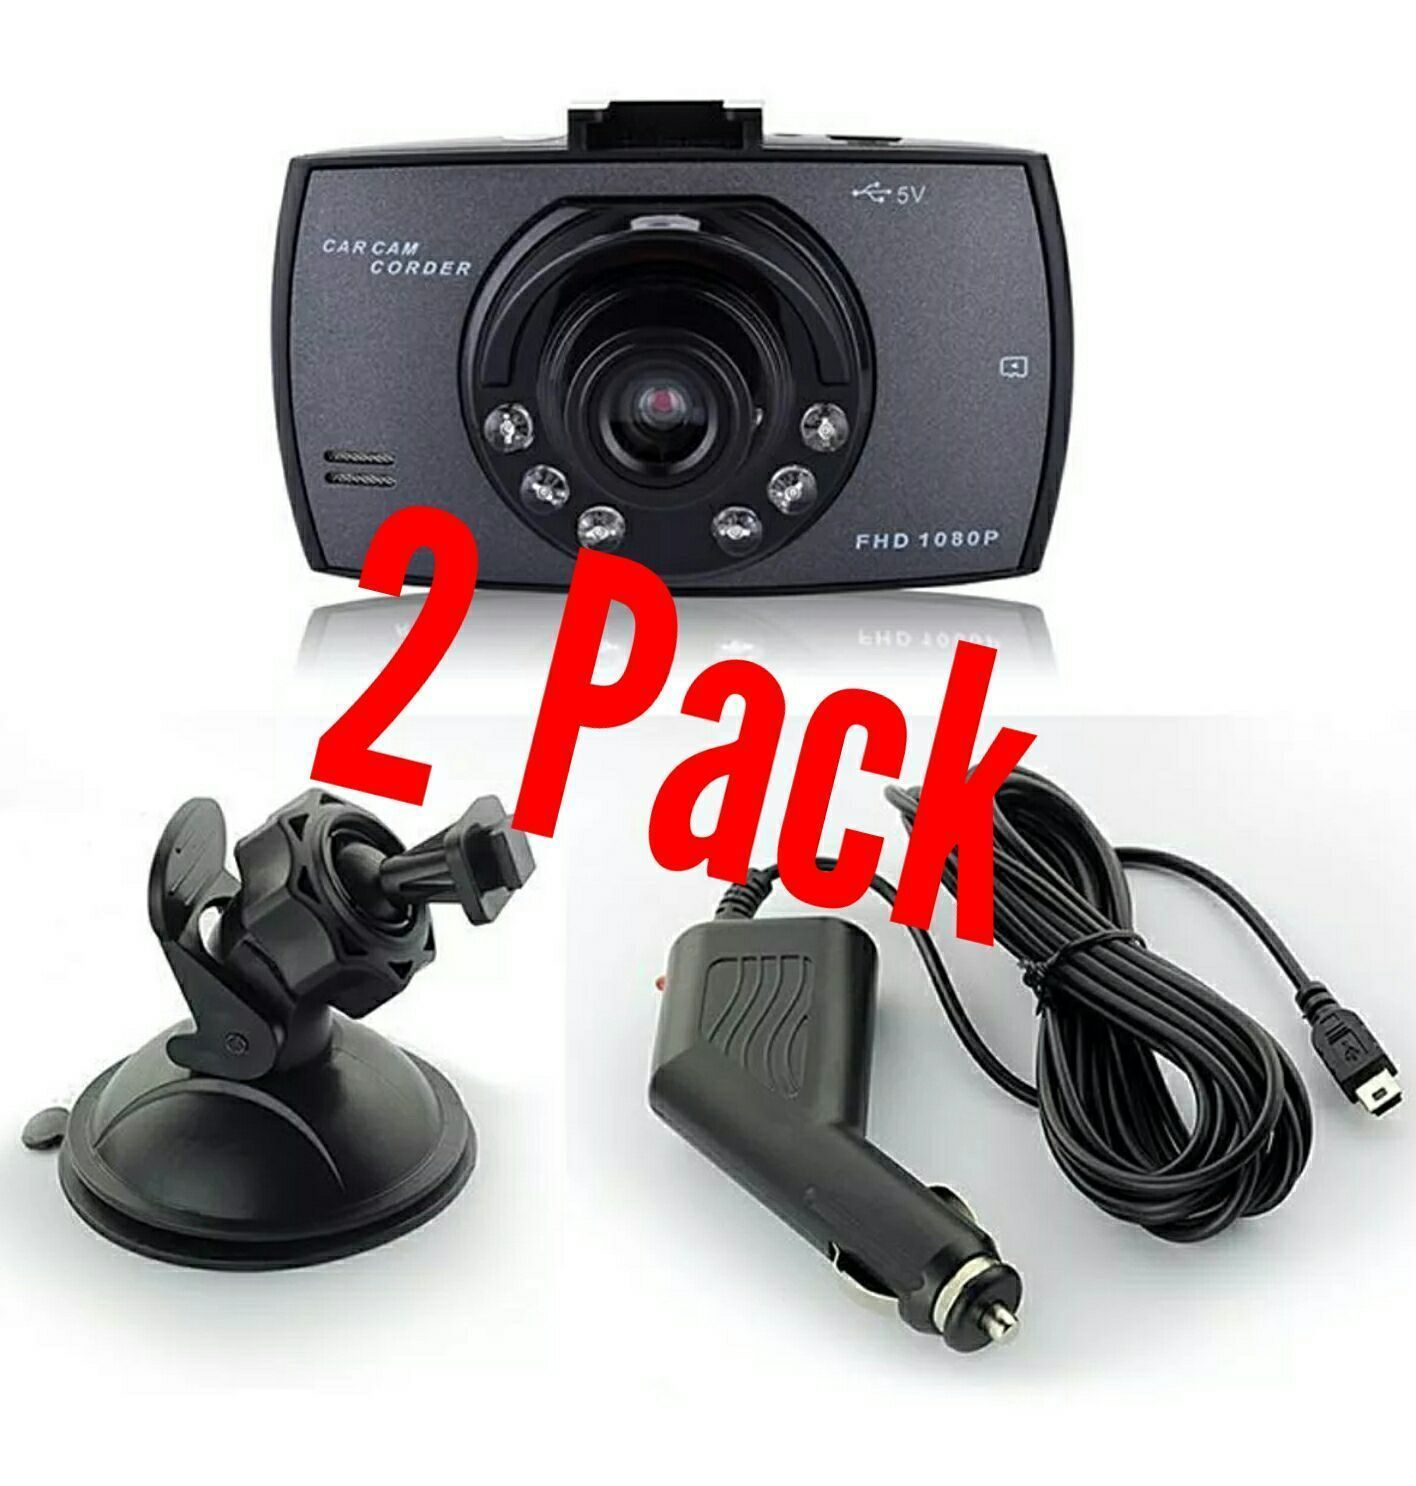 Two dash board cams - Great for a gift